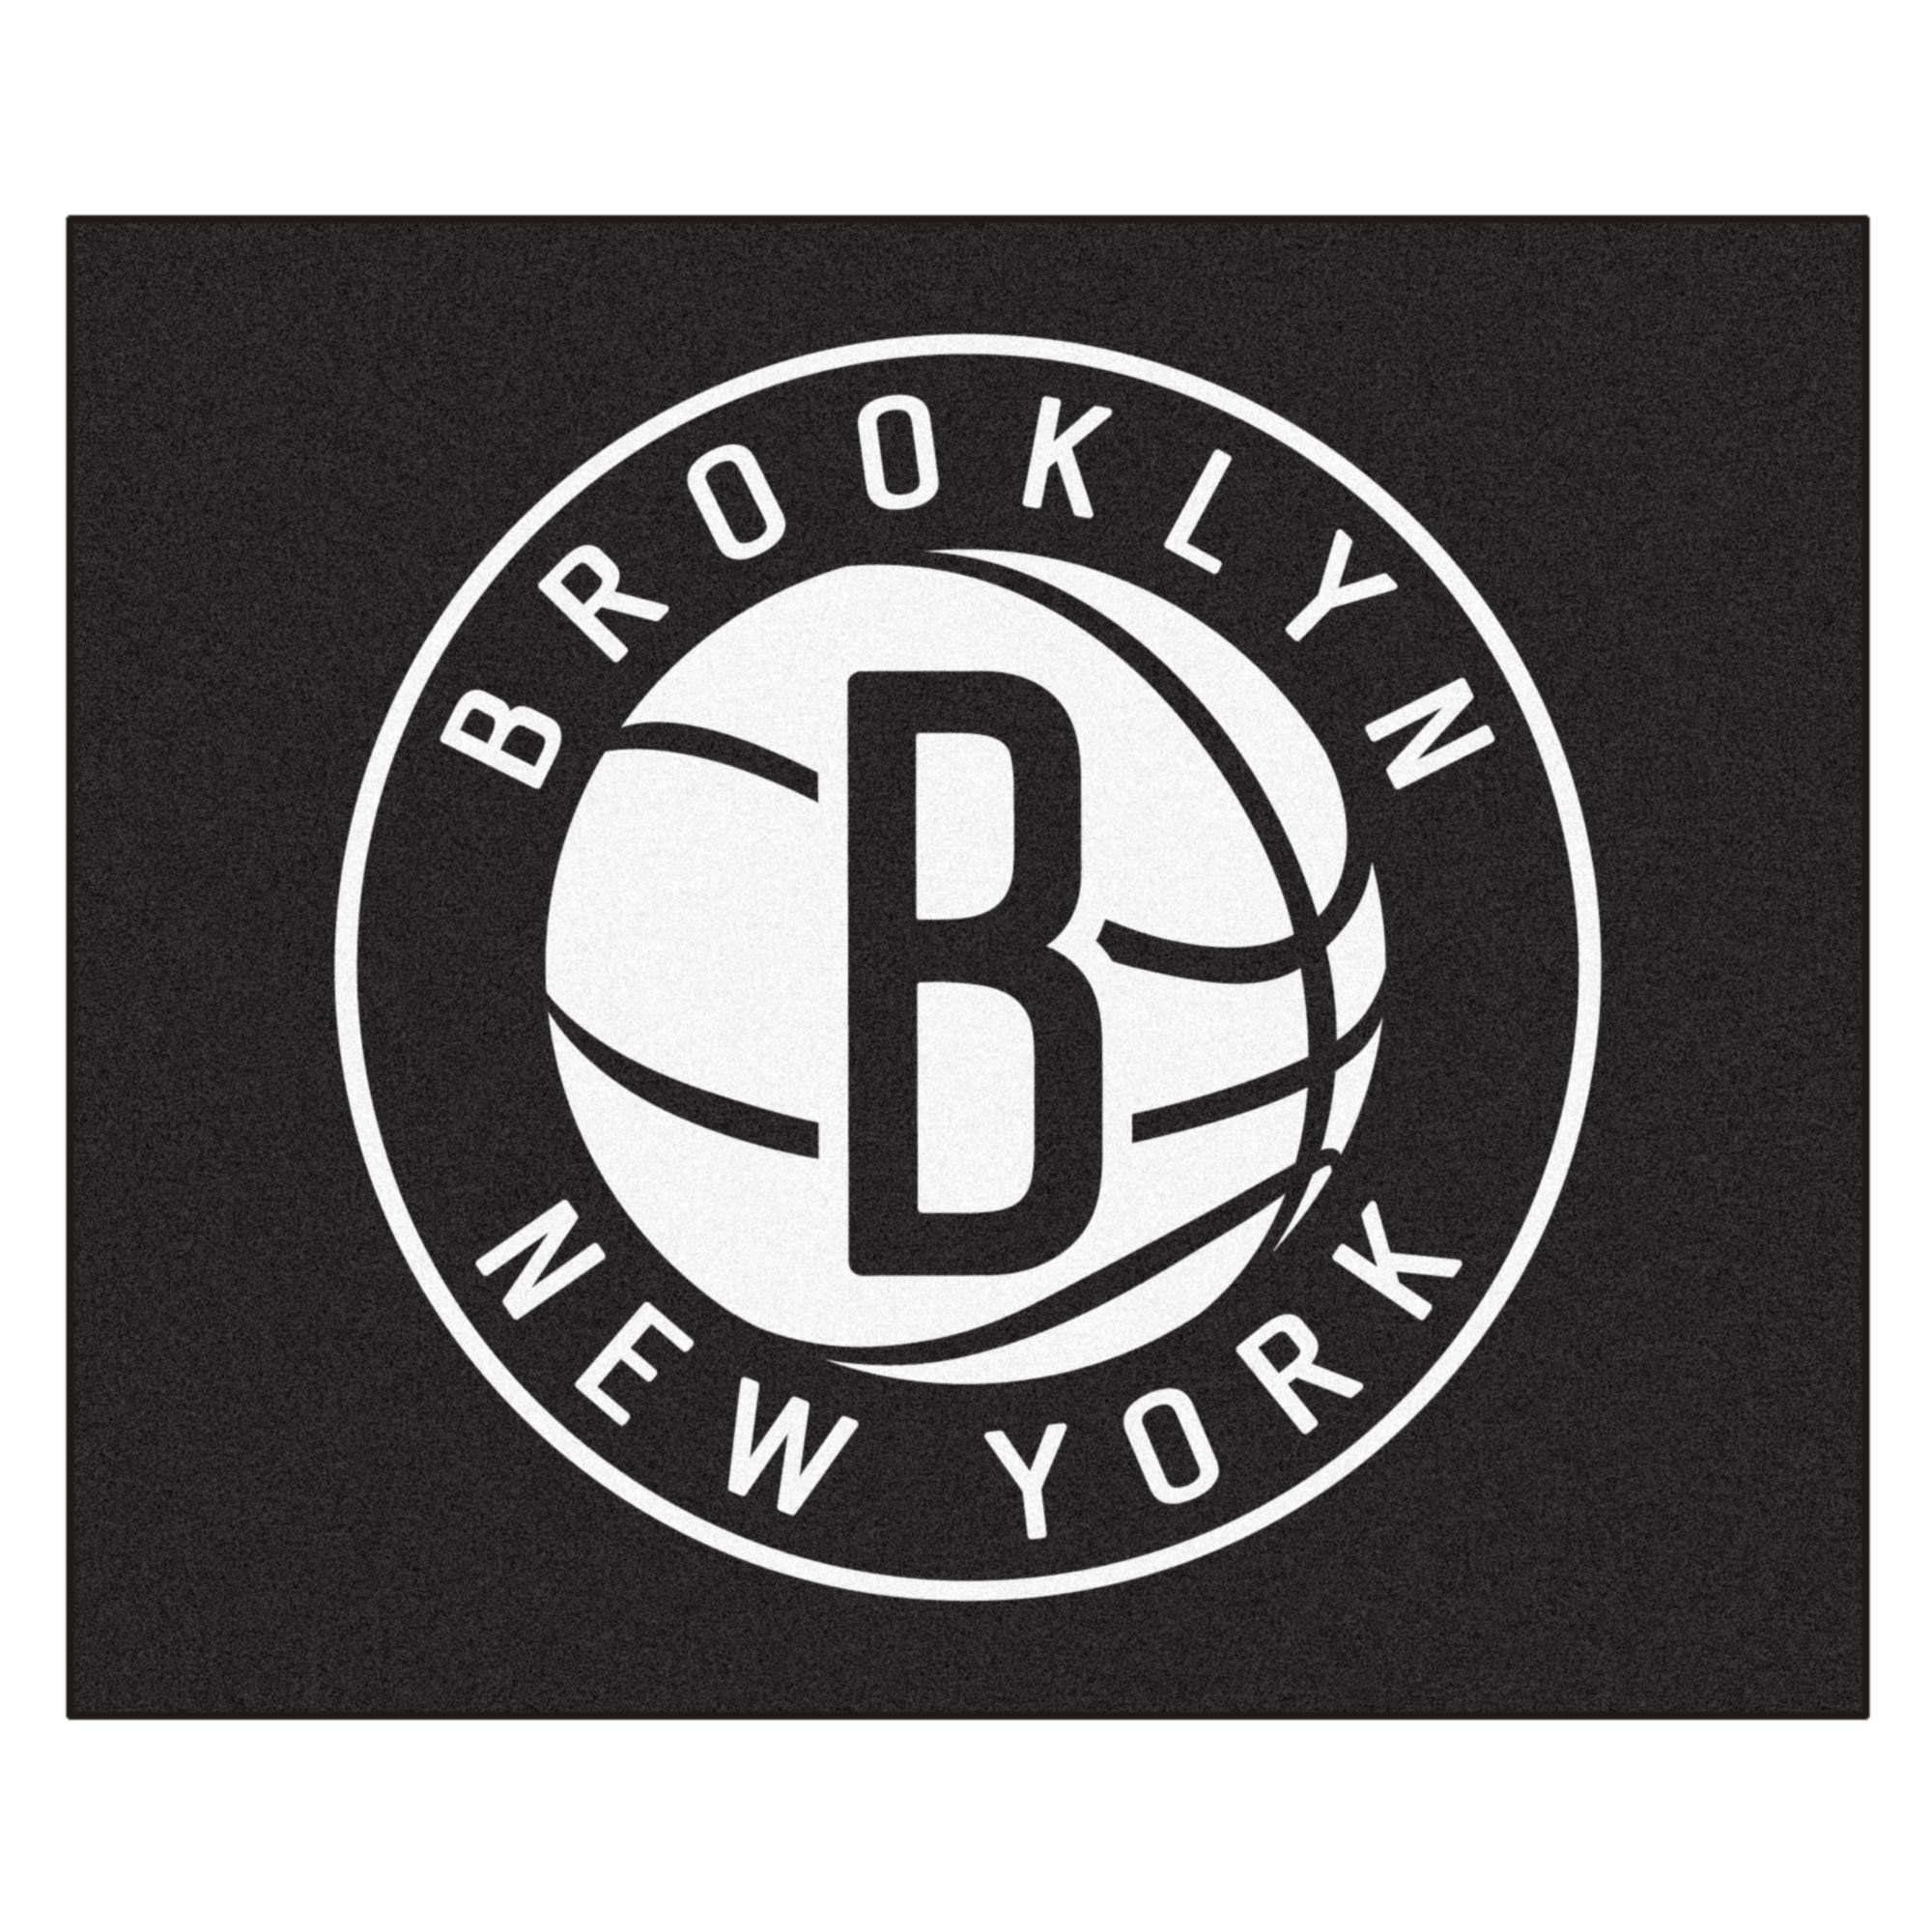 FANMATS 19458 NBA - Brooklyn Nets Tailgater Rug , Team Color, 59.5''x71''